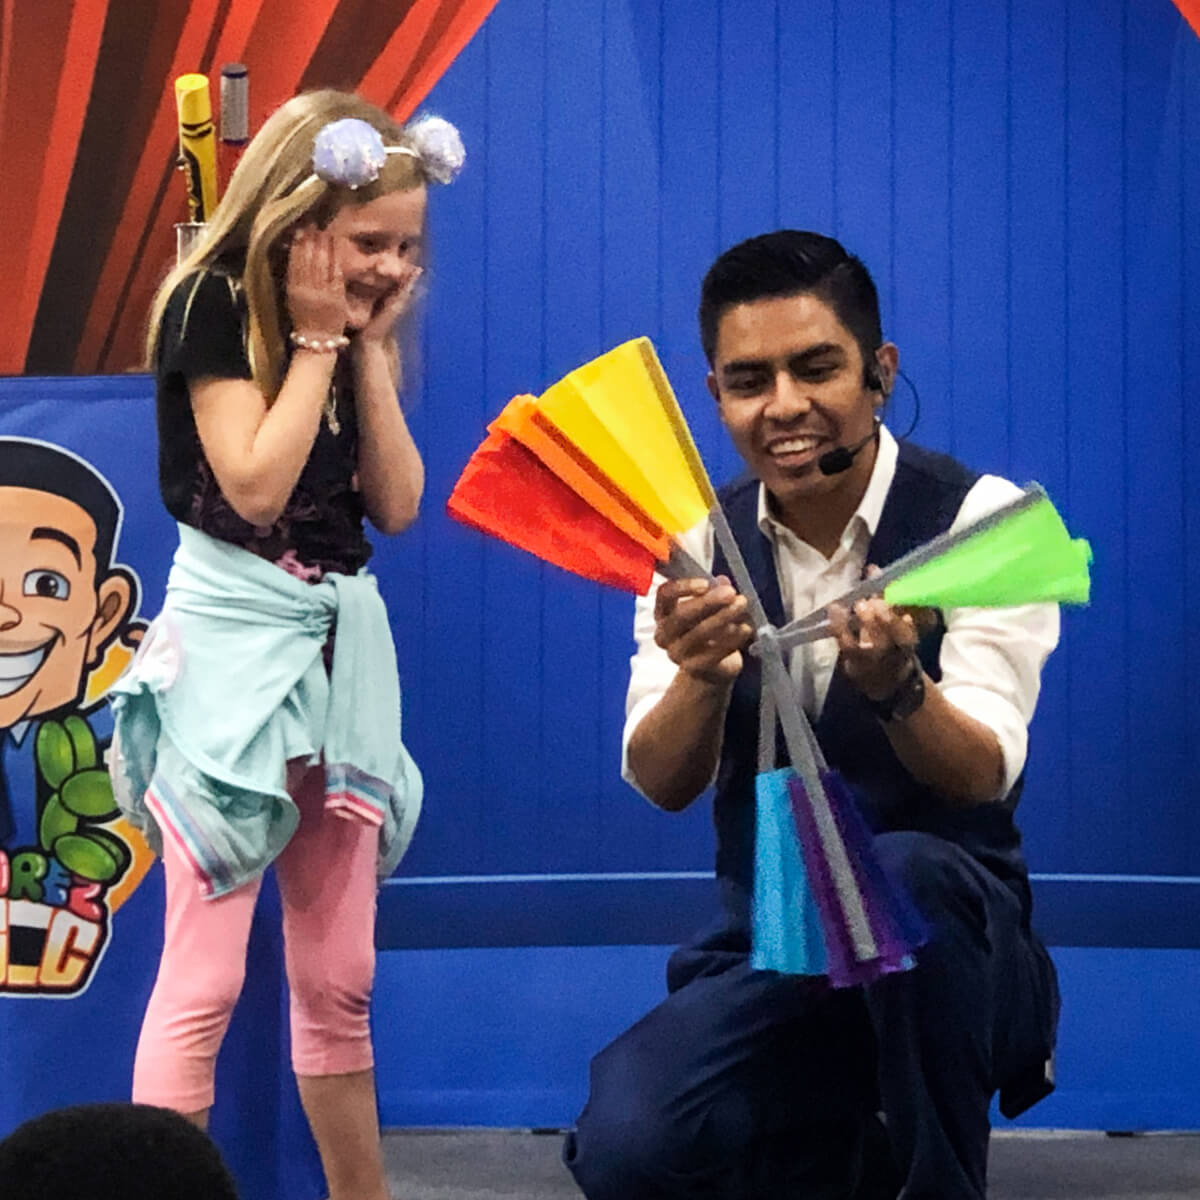 Magician for birthday party.